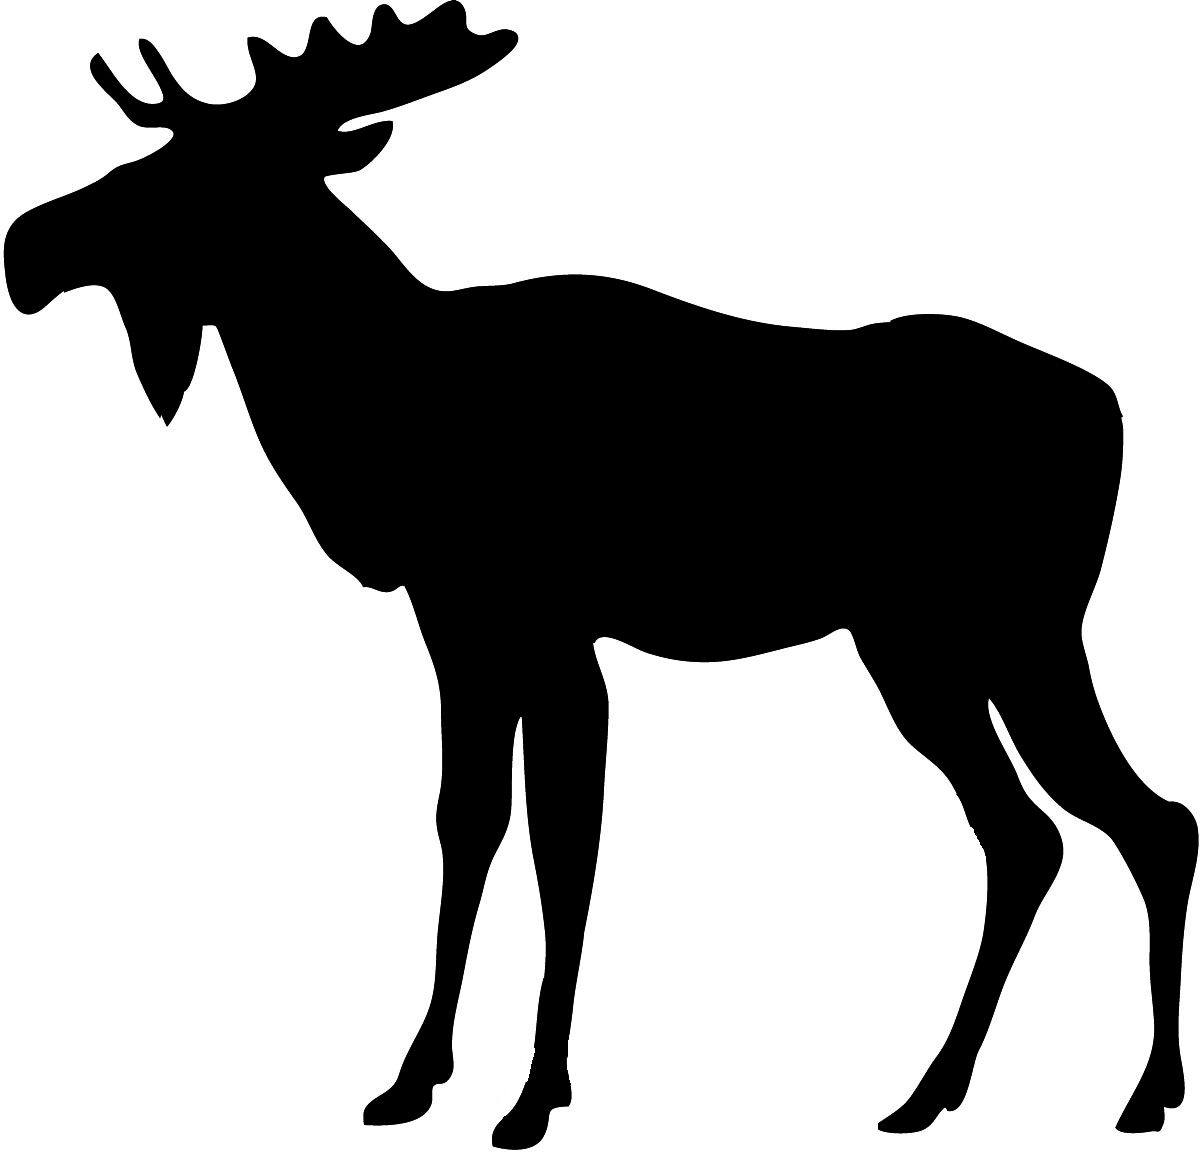 1200x1153 Animal Silhouette Animal Silhouette Moose 2.jpg Clocks